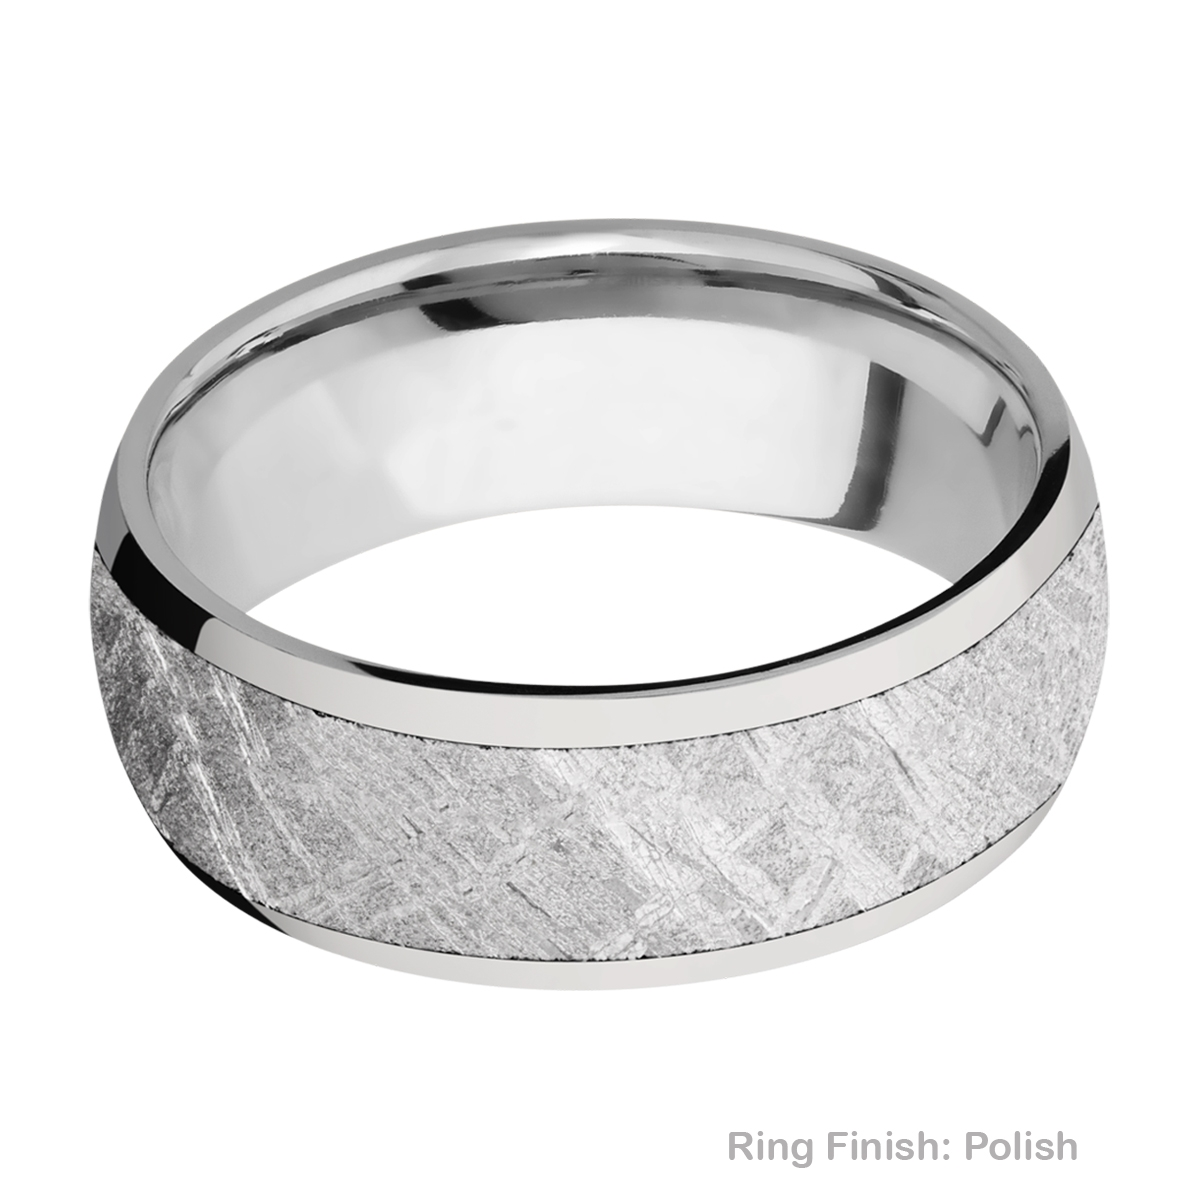 Lashbrook 8D16/METEORITE Titanium Wedding Ring or Band Alternative View 3